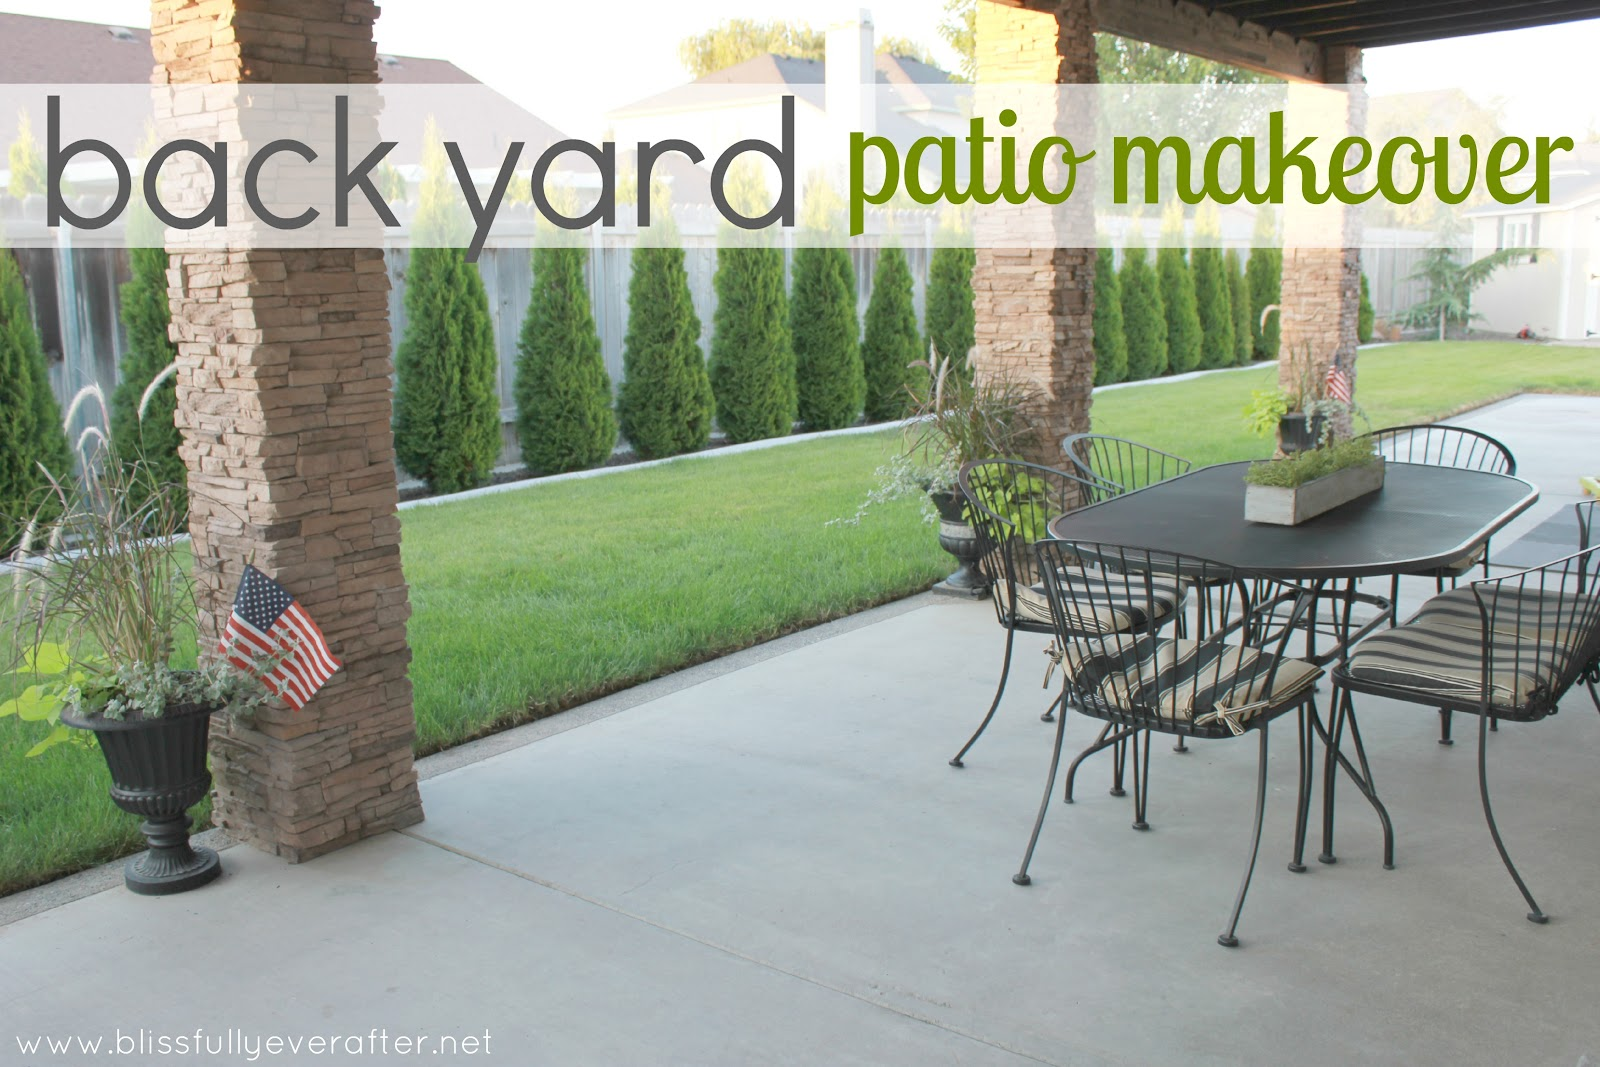 Back Yard Patio Makeover